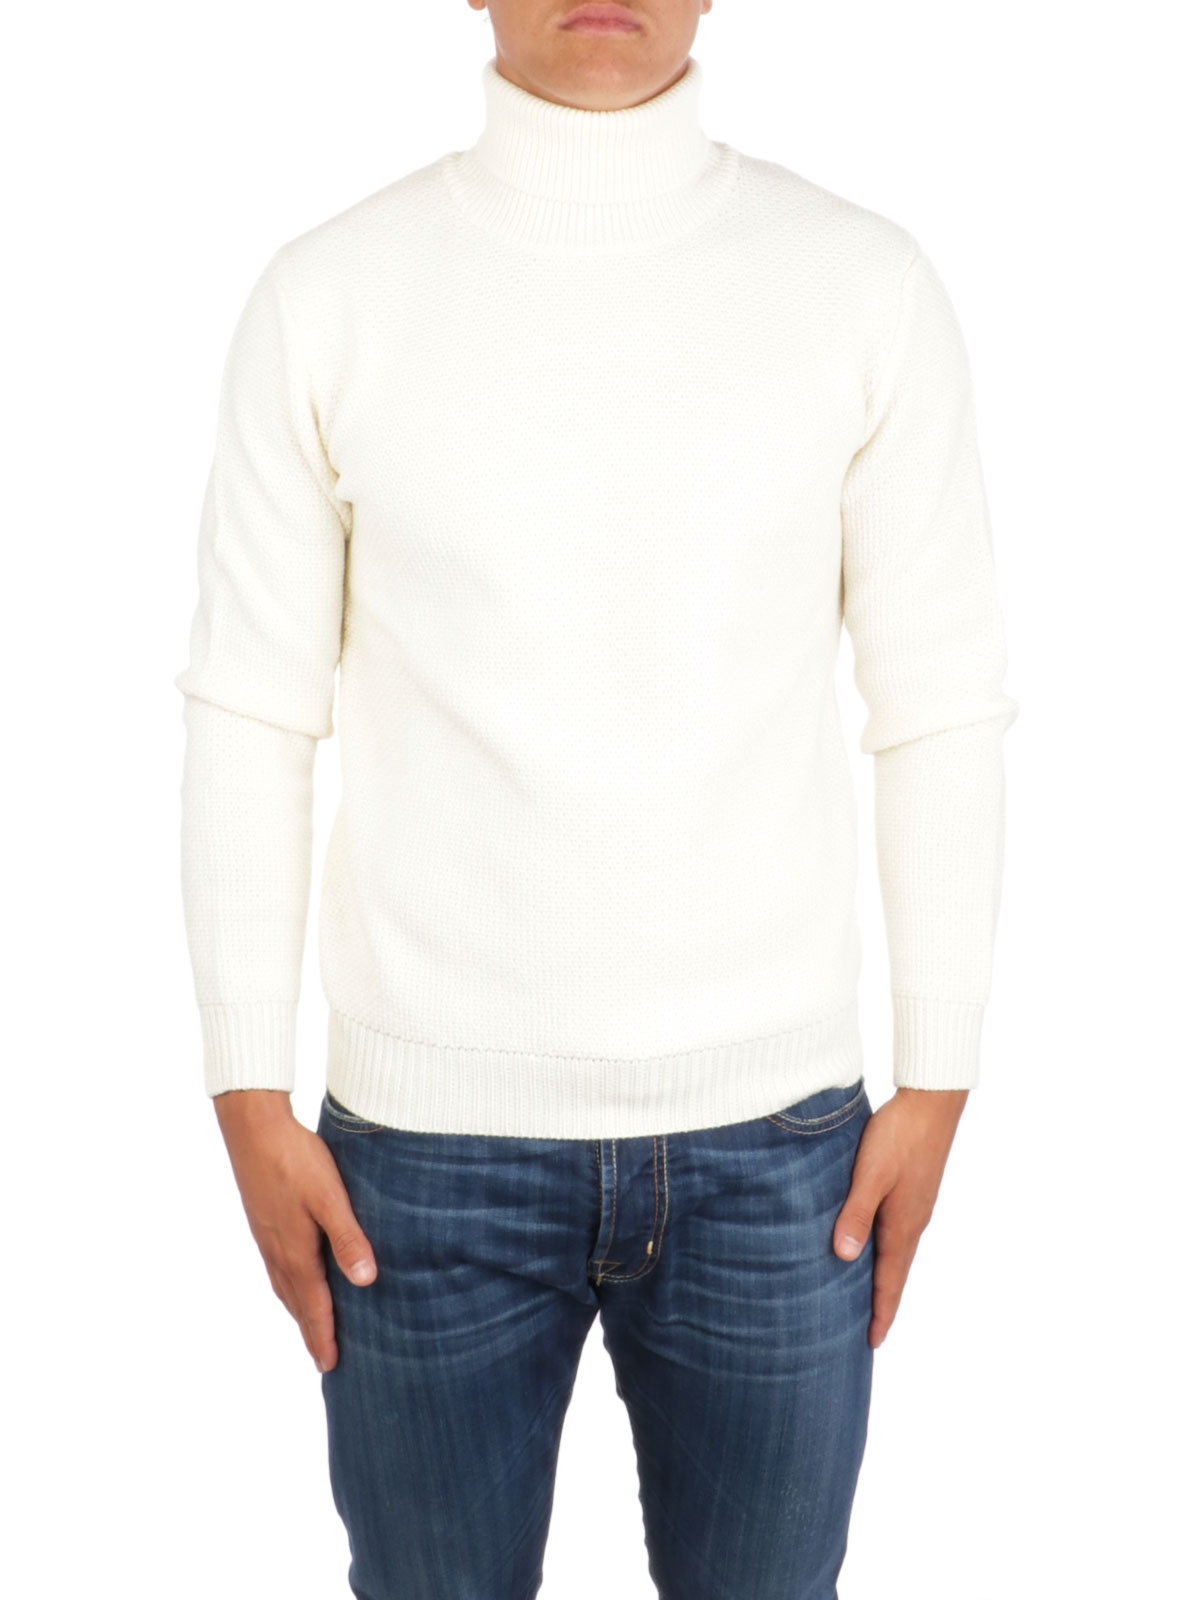 Picture of ALTEA | Men's Wool Knitted Turtleneck Sweater